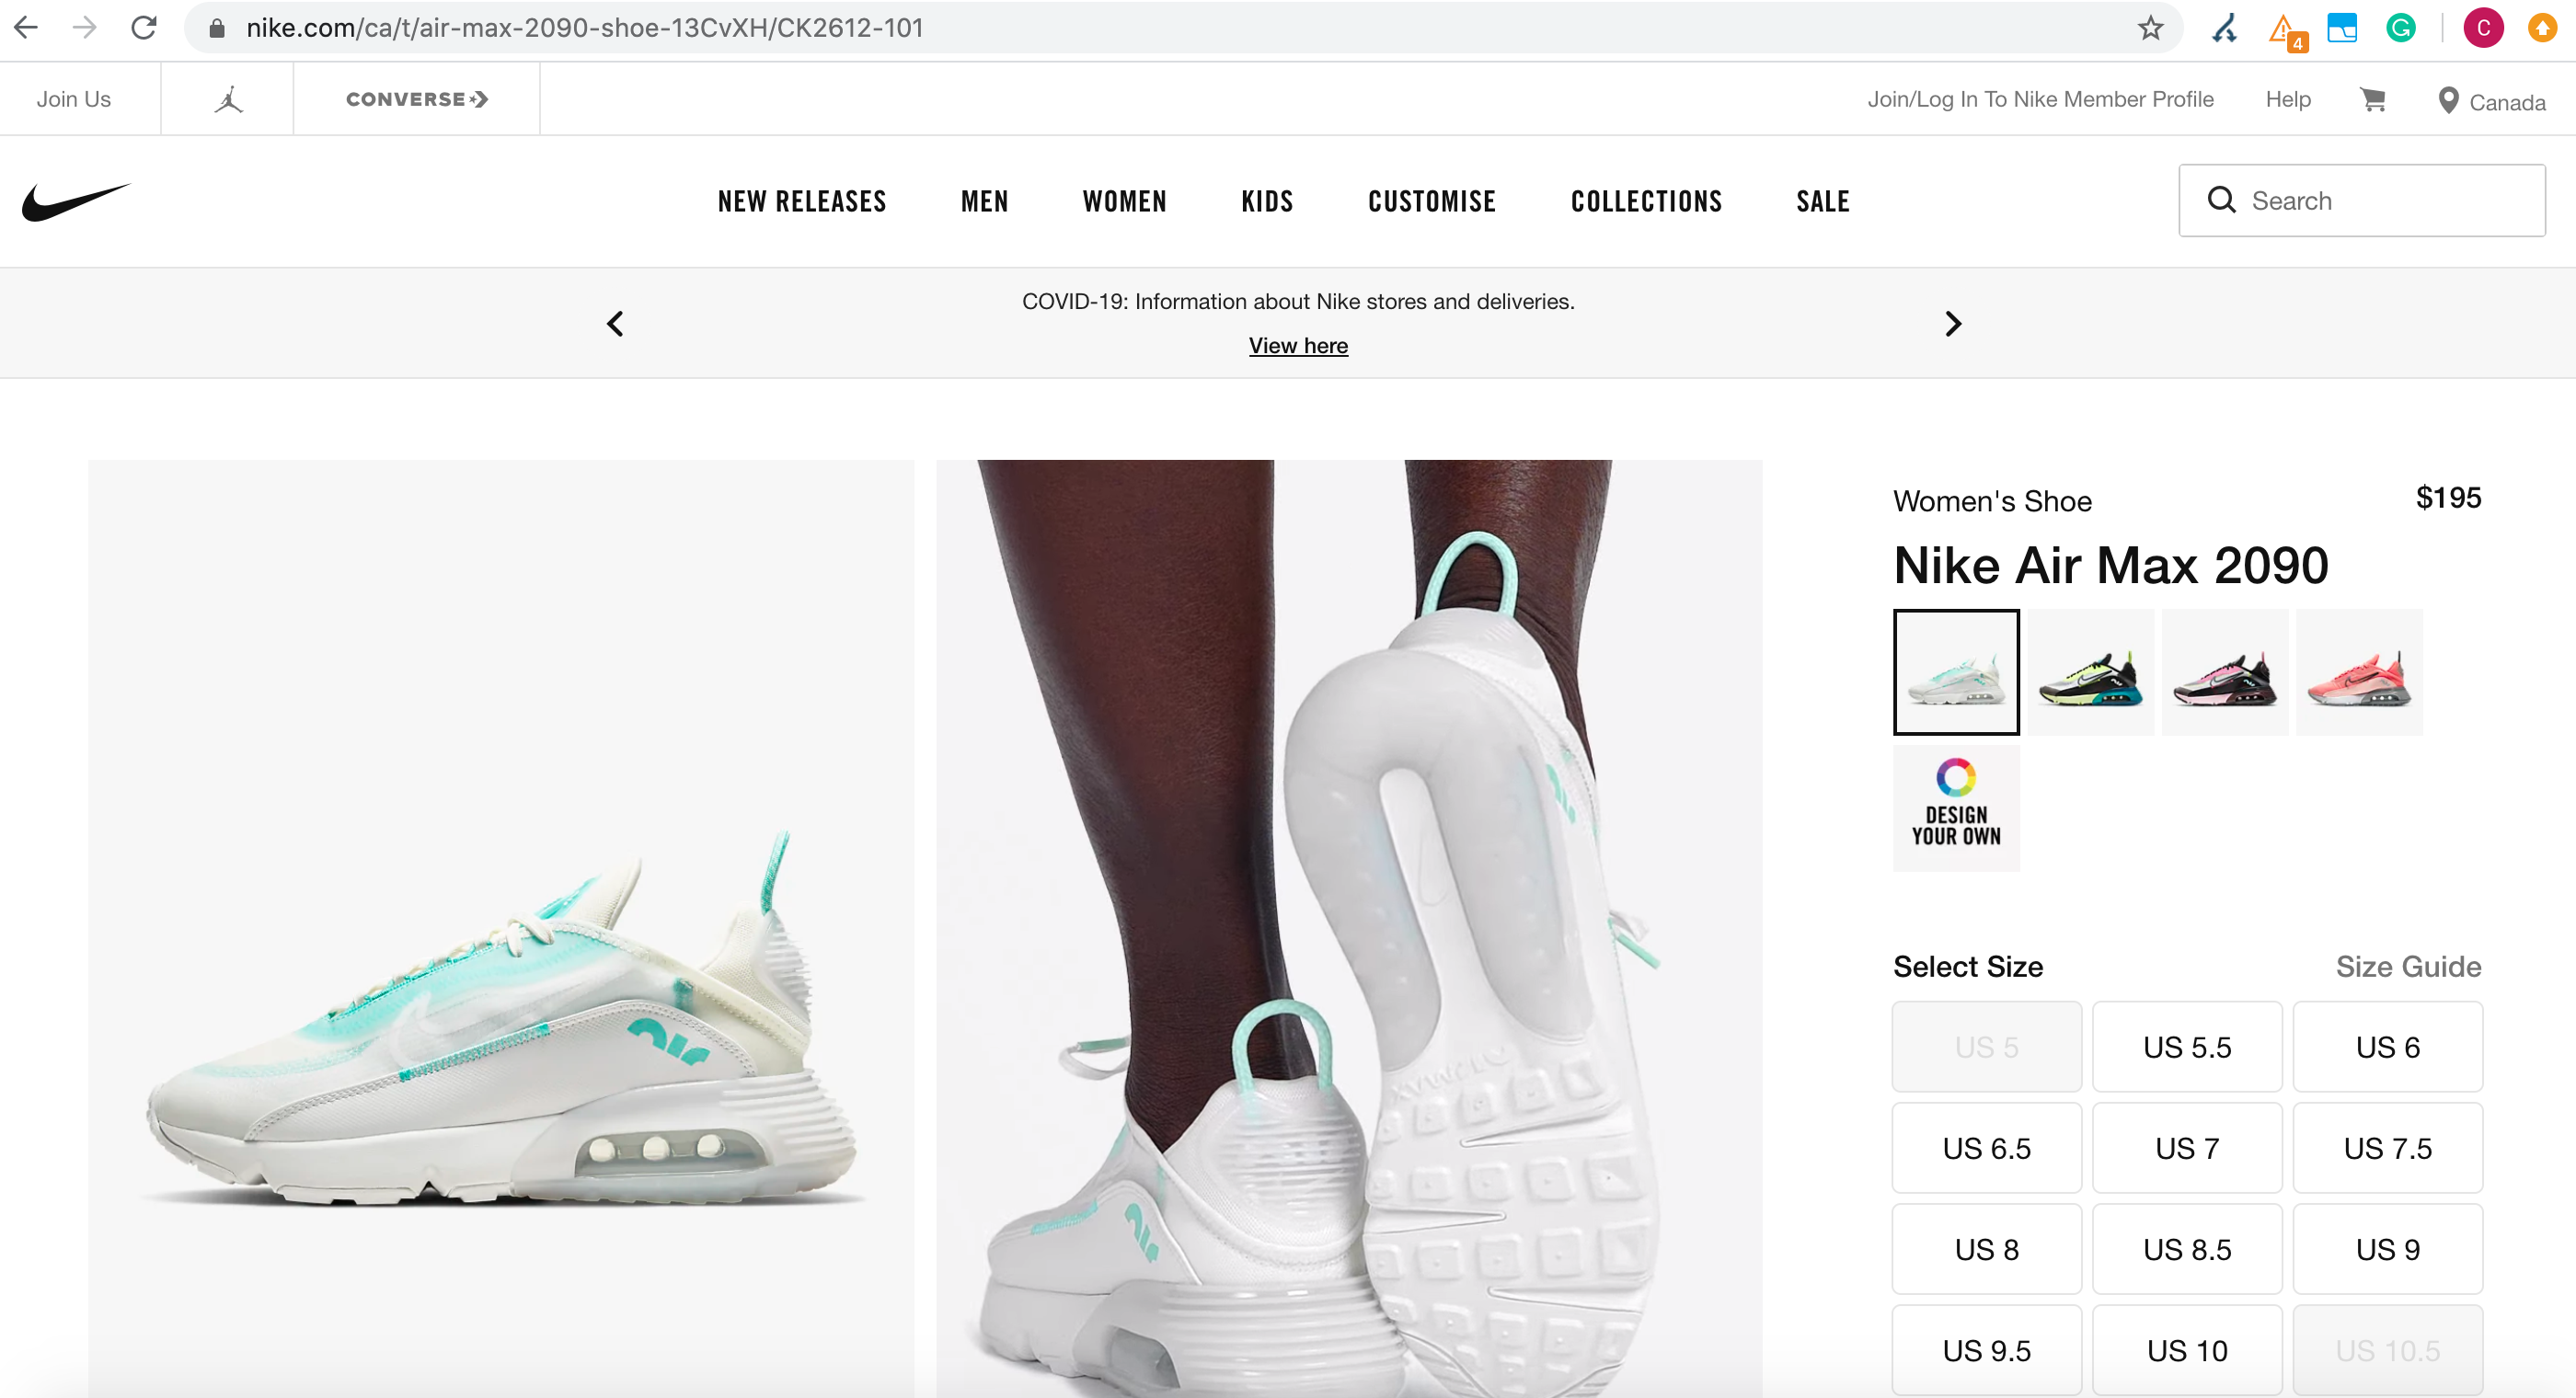 Nike online store on root domain